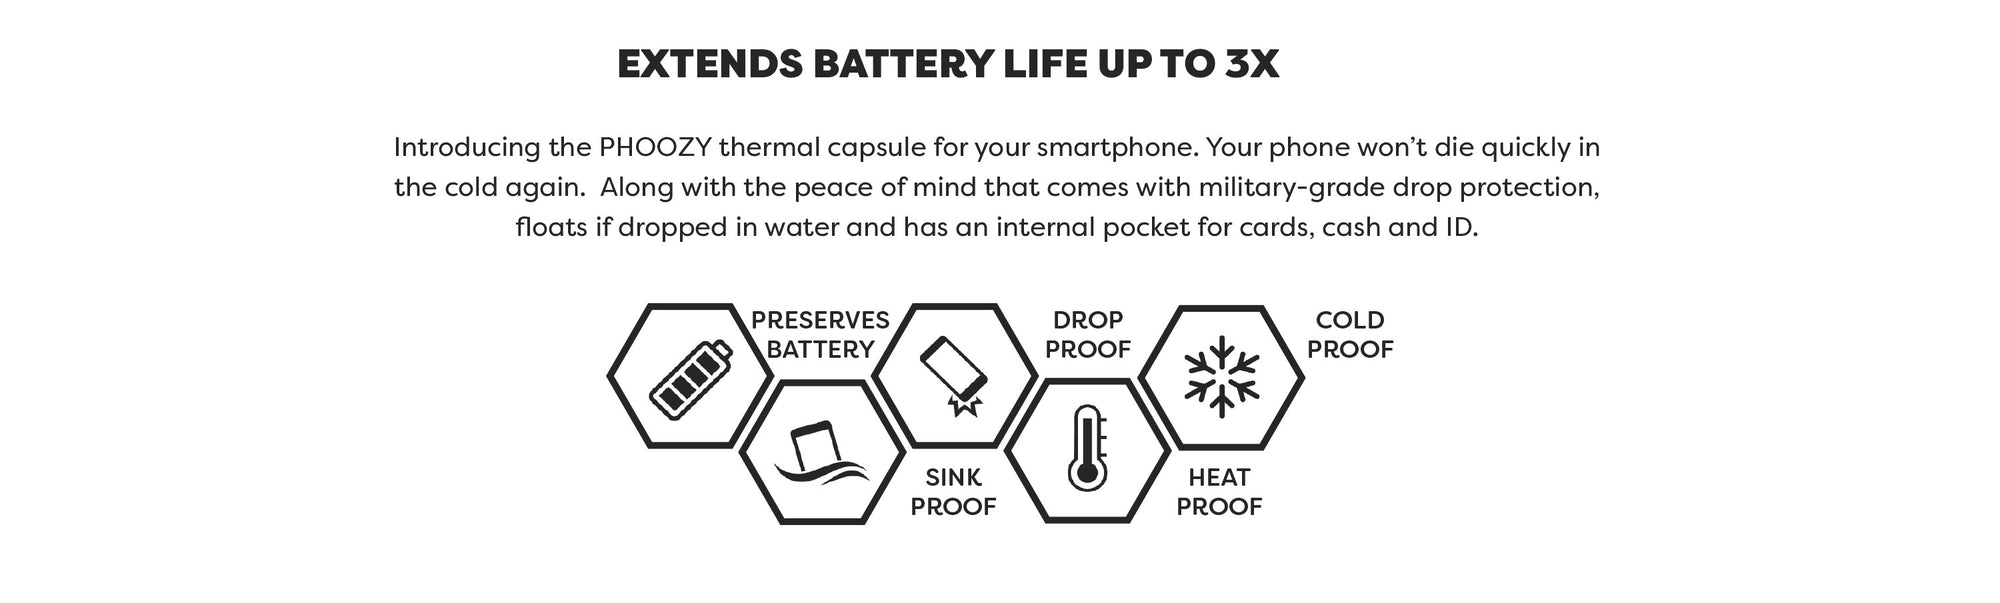 Extend battery life up to 3X with PHOOZY thermal capsules